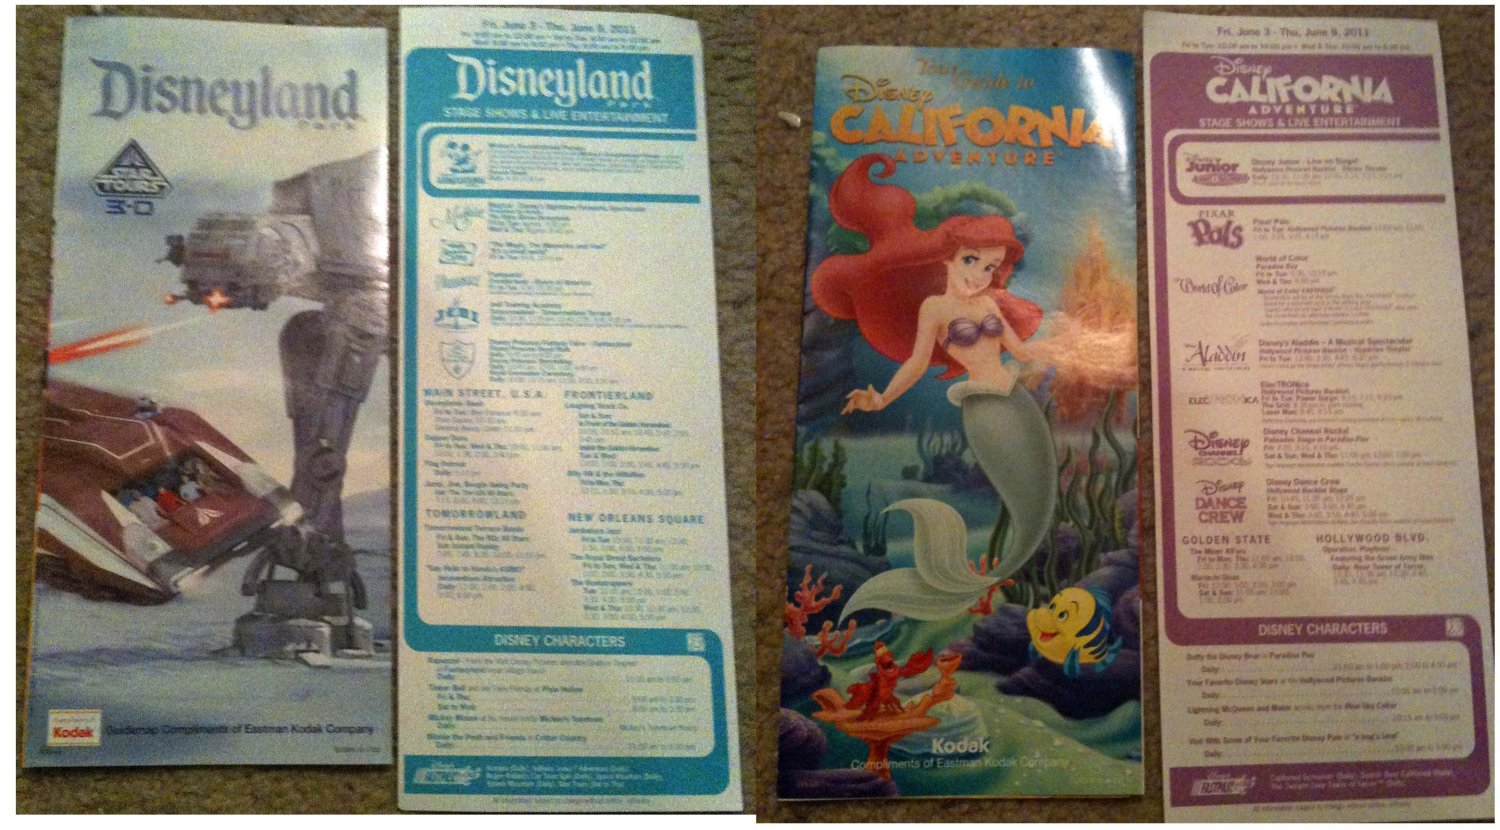 Disneyland Star Tours & California Adventure Little Mermaid OPENING DAY guides